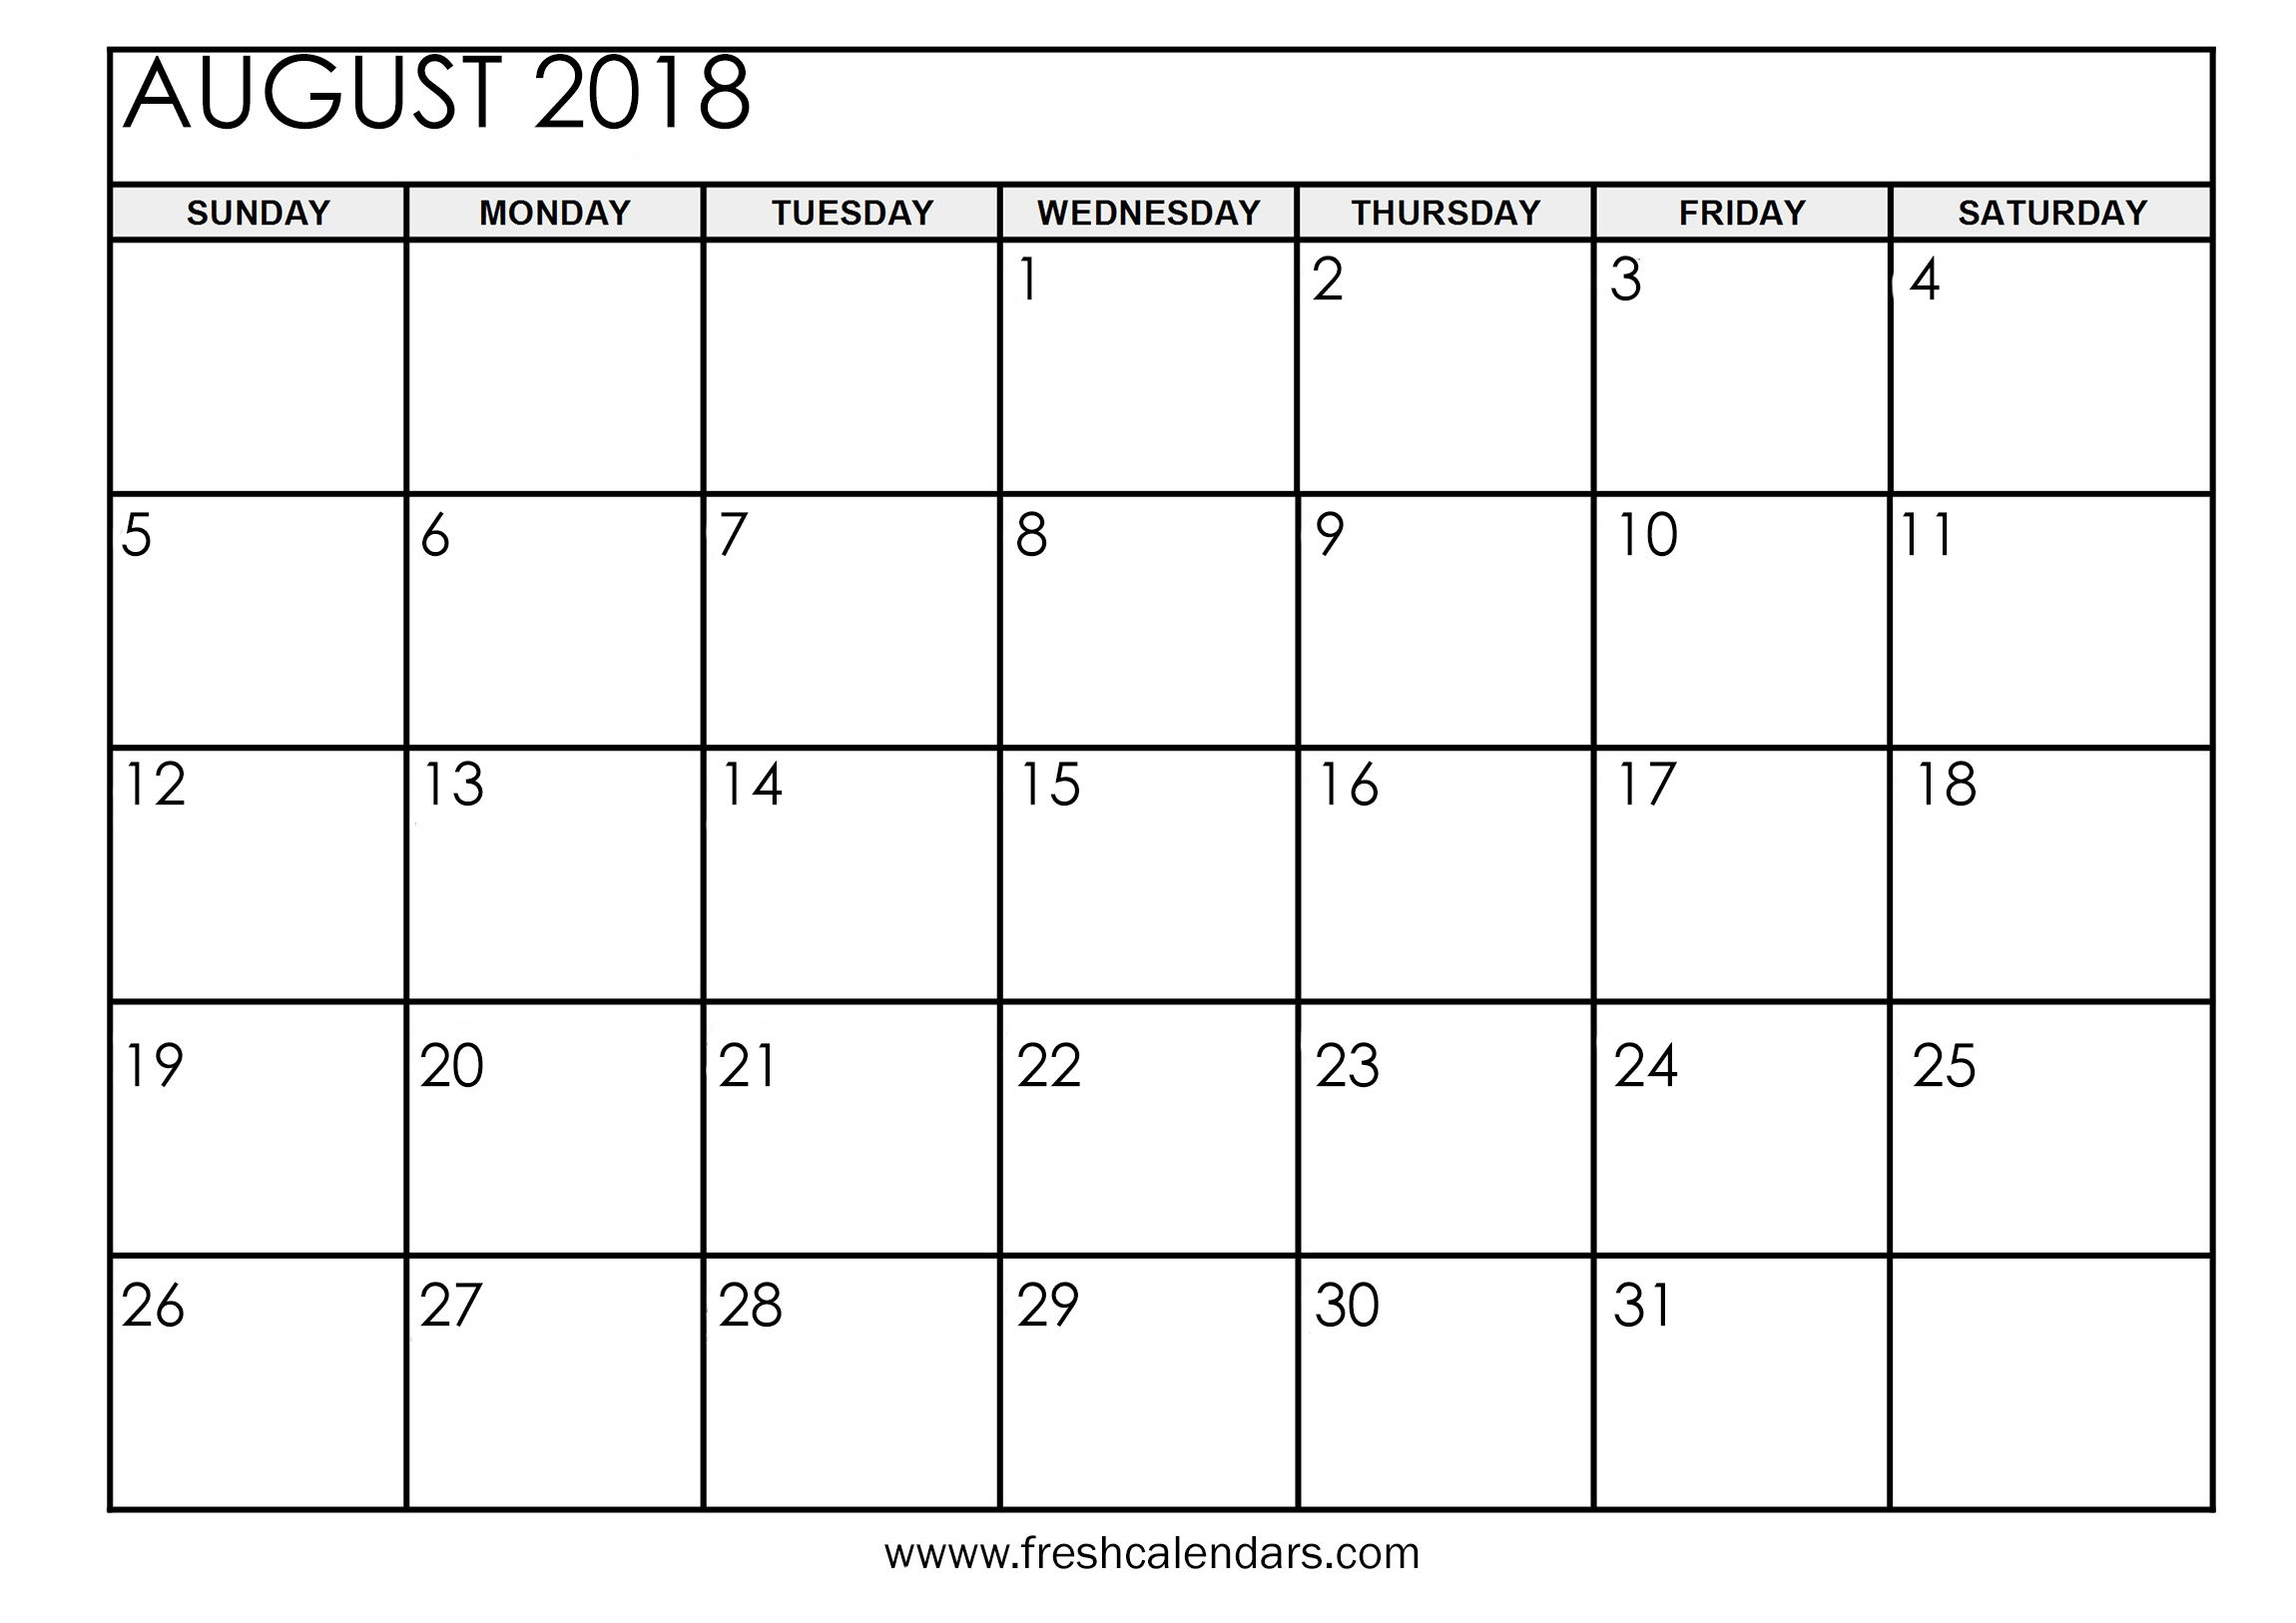 August 2018 Calendar Printable - Fresh Calendars regarding Monthly August Calander Template